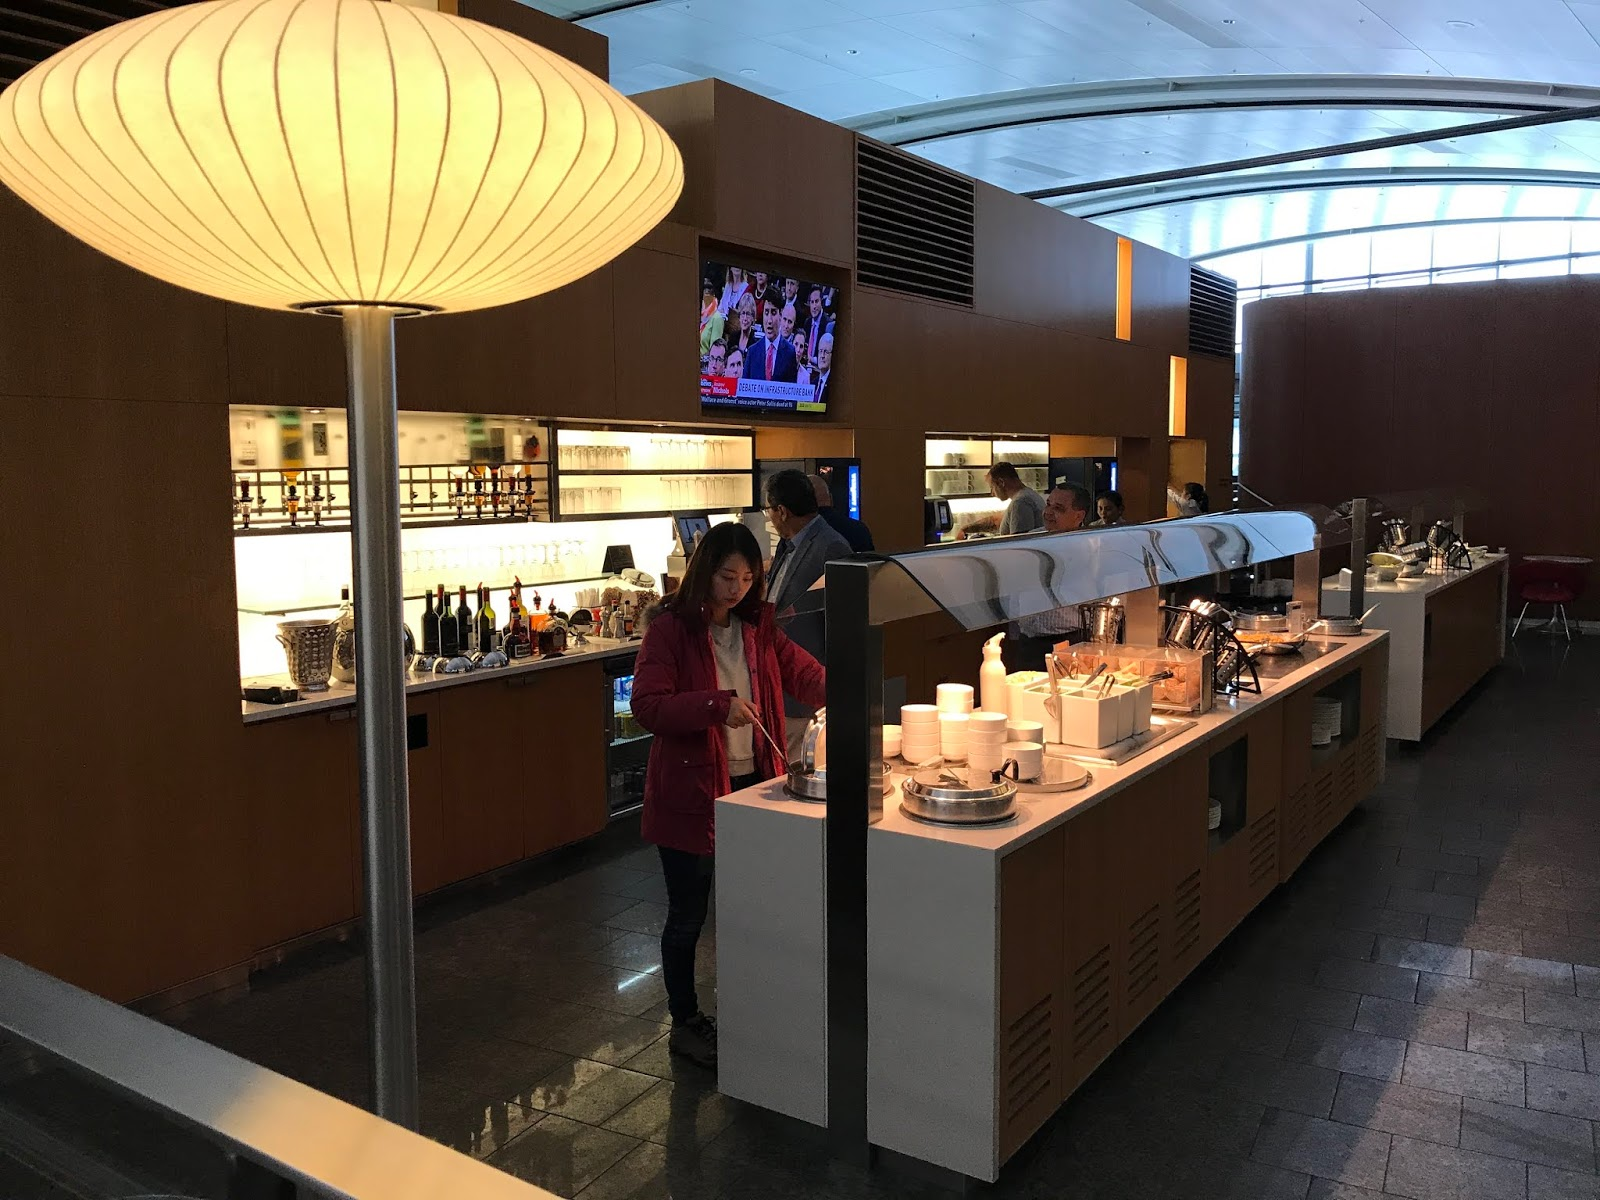 YYZ |多倫多機場 加拿大航空楓葉貴賓室 Maple Leaf Lounge